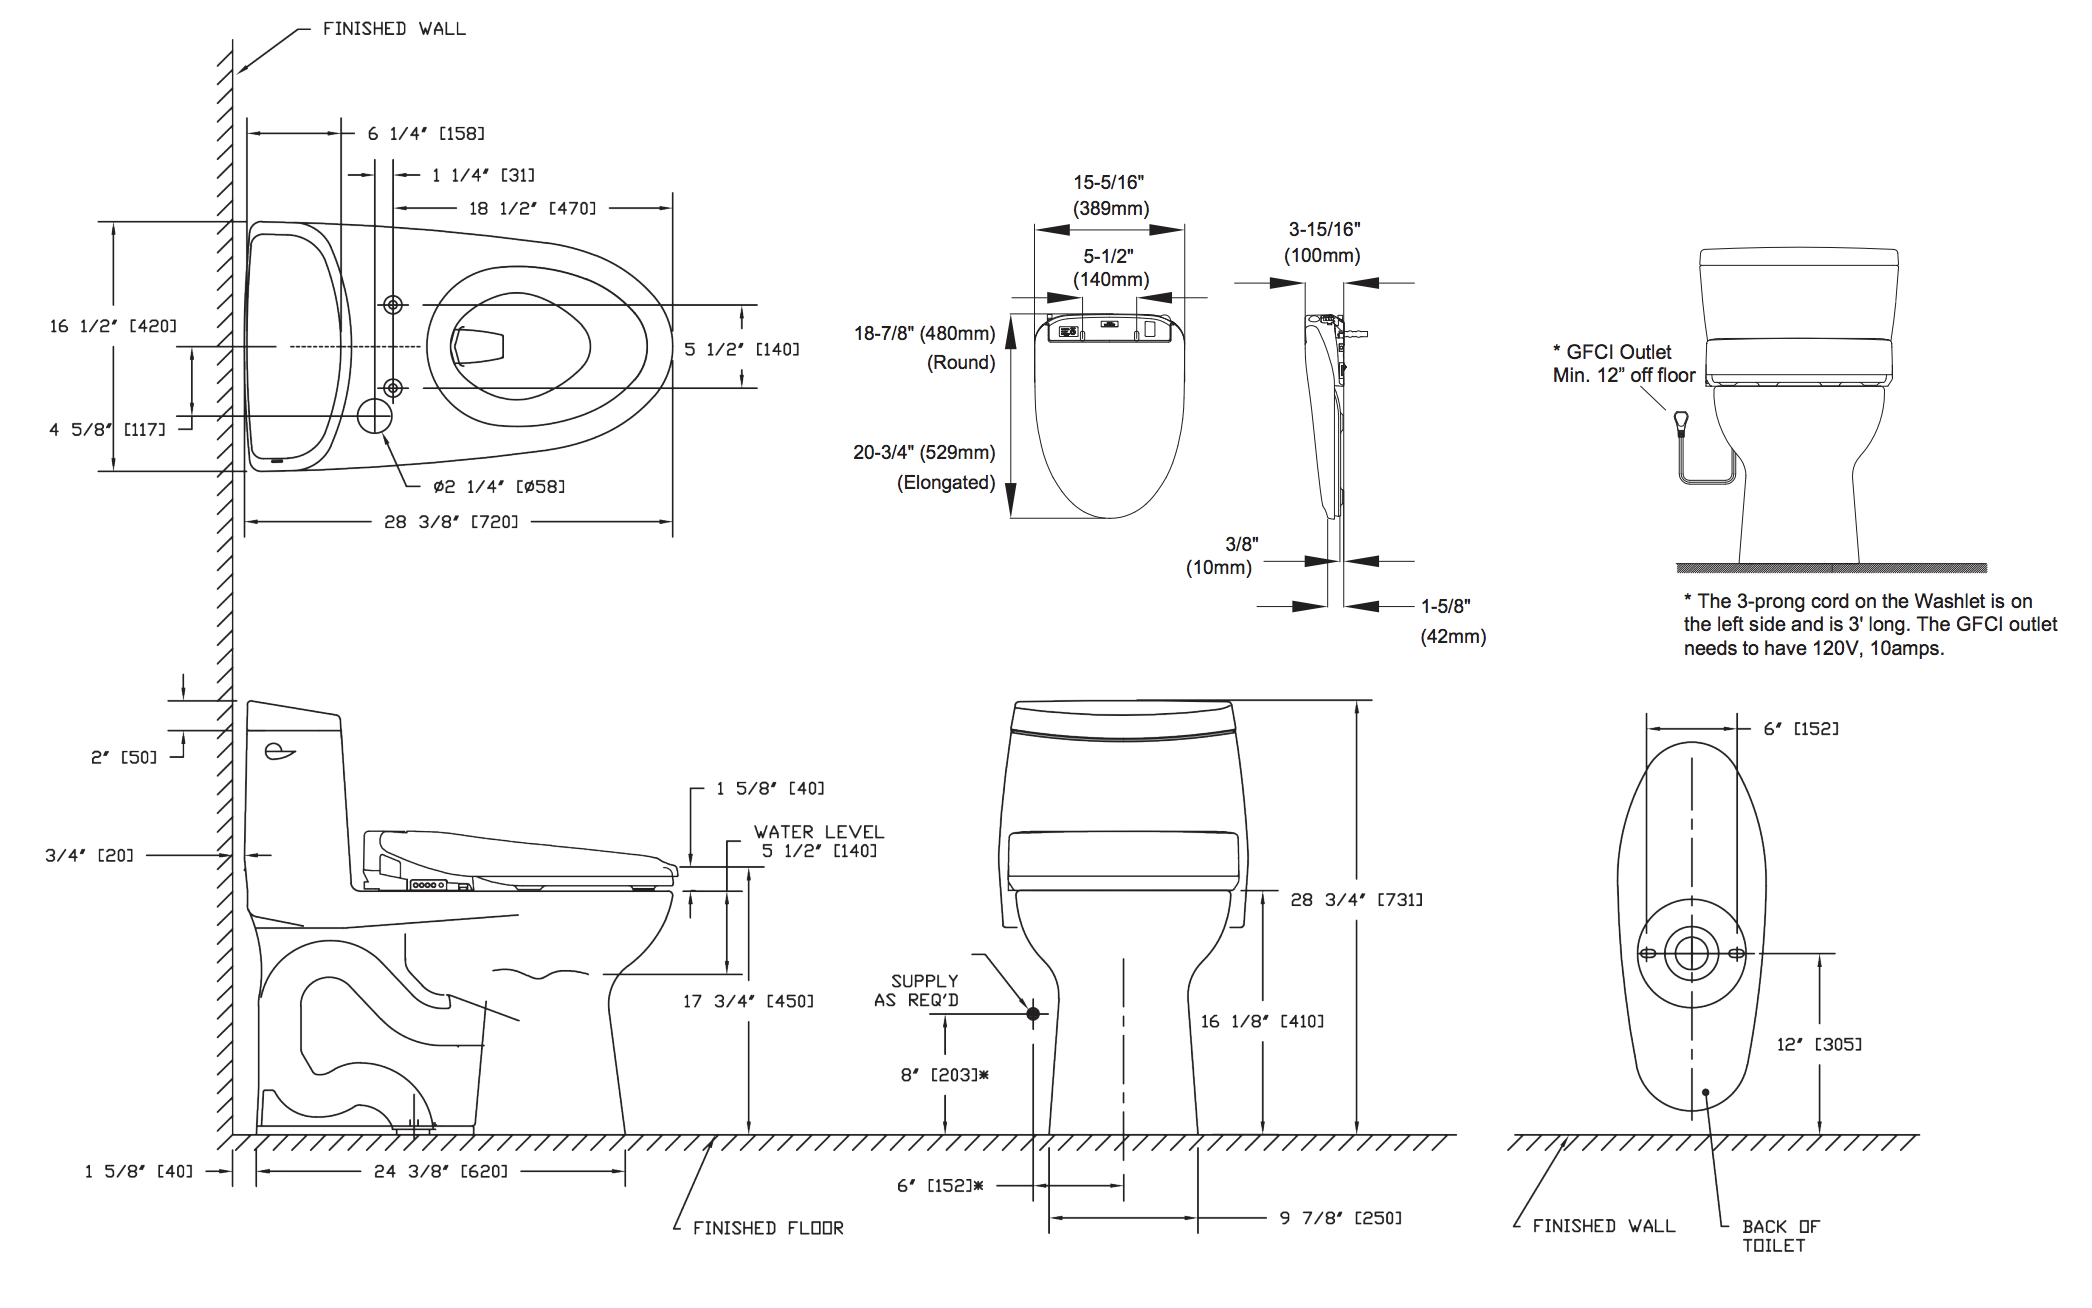 toto-ultramax-ii-washlet-s300e-one-piece-toilet-and-bidet-system-1.28-gpf-diagram.png